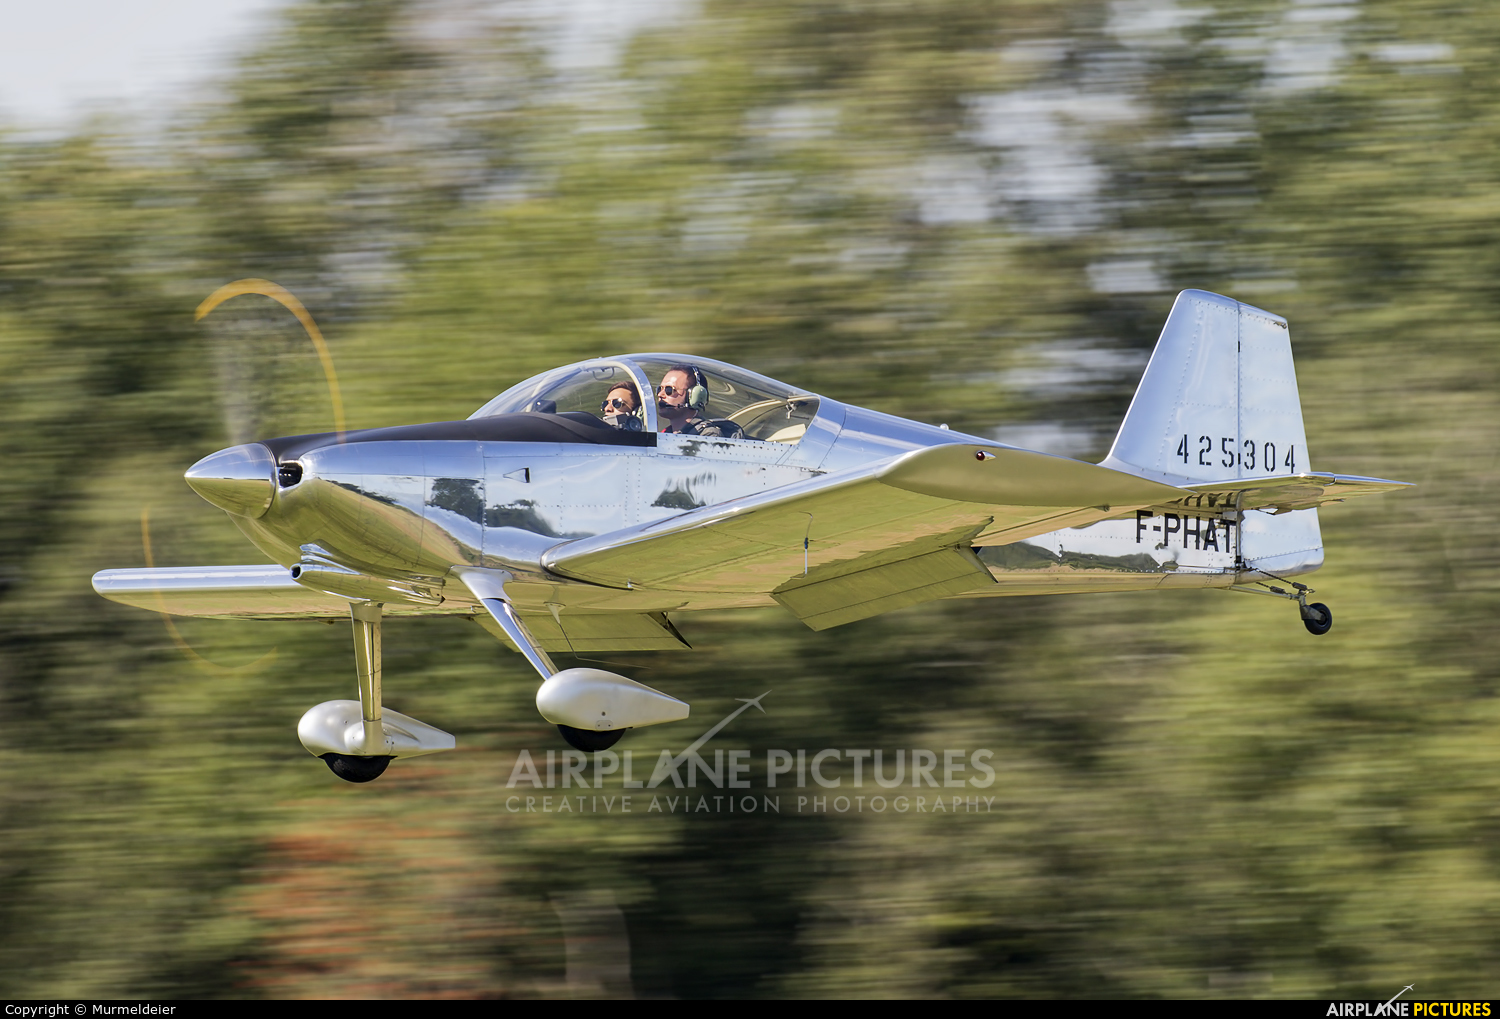 Private F-PHAT aircraft at St Hubert